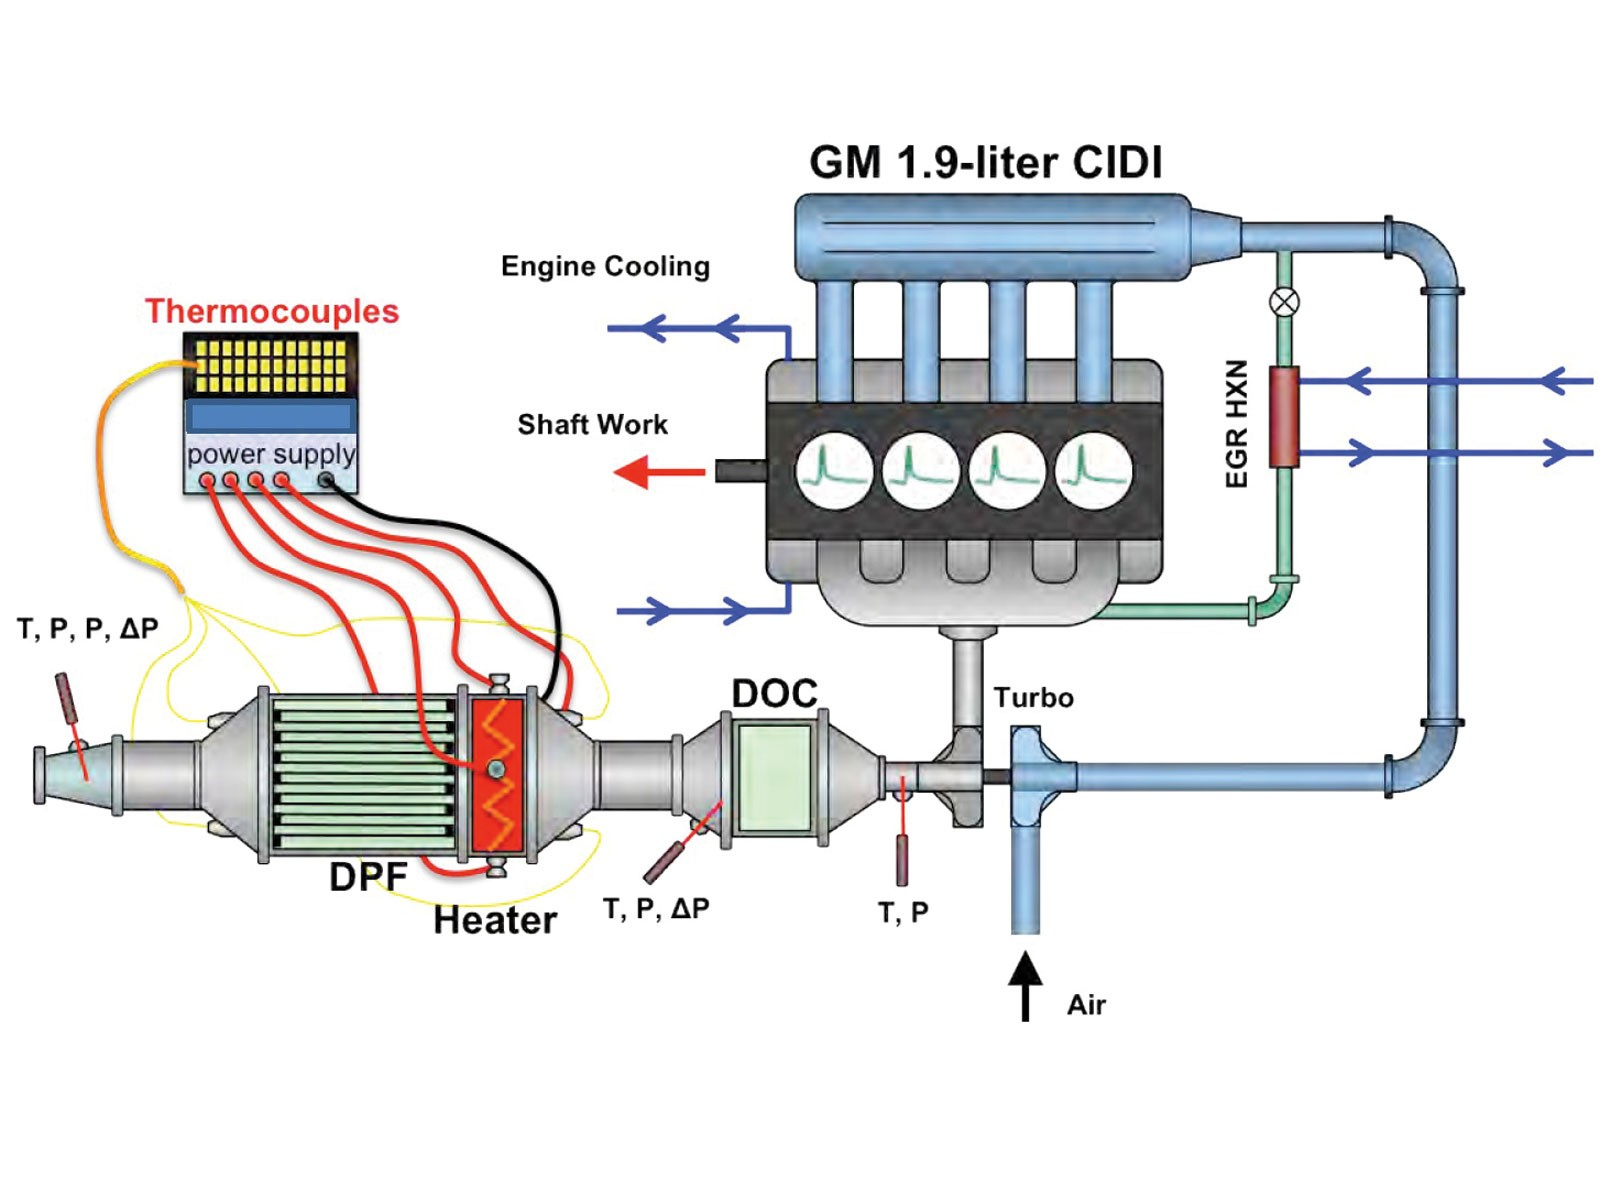 Engine Components Diagram Electric Generator Diagram Eee Electronics Of Engine Components Diagram